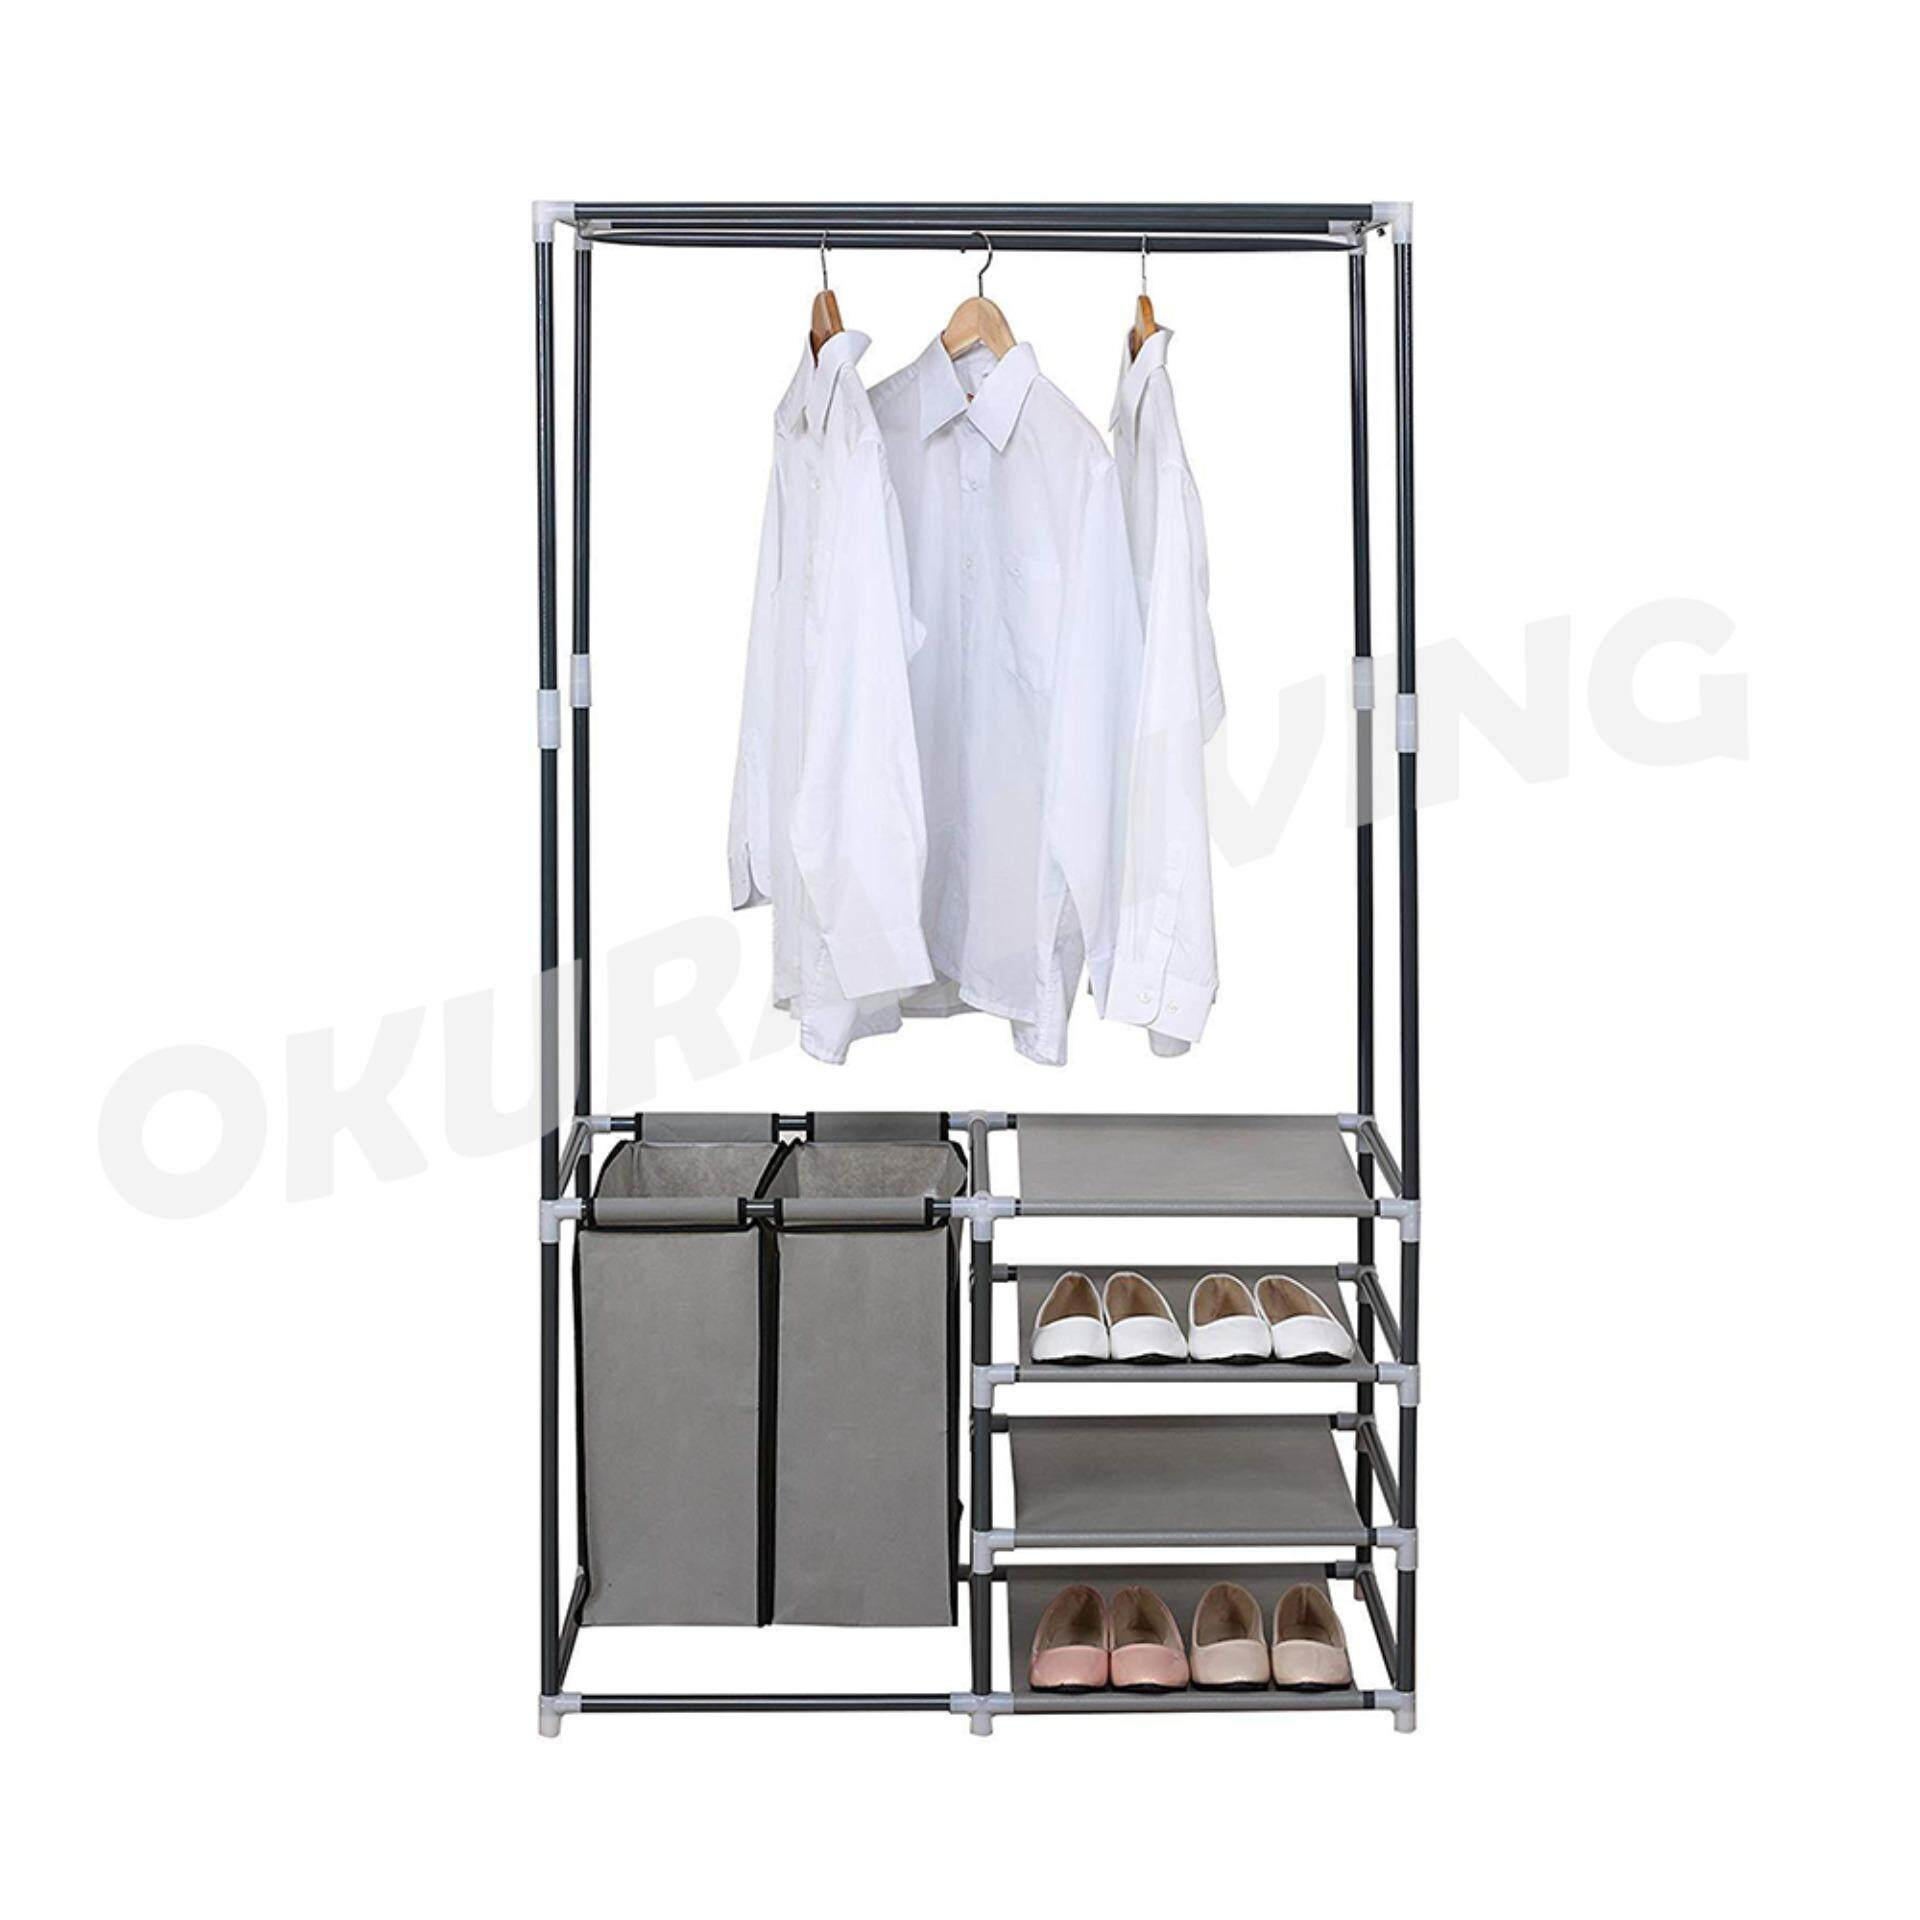 OKURA 4 Tiers Shelves Clothing Garment Rack Shoe Organizer with 2 Laundry Bags